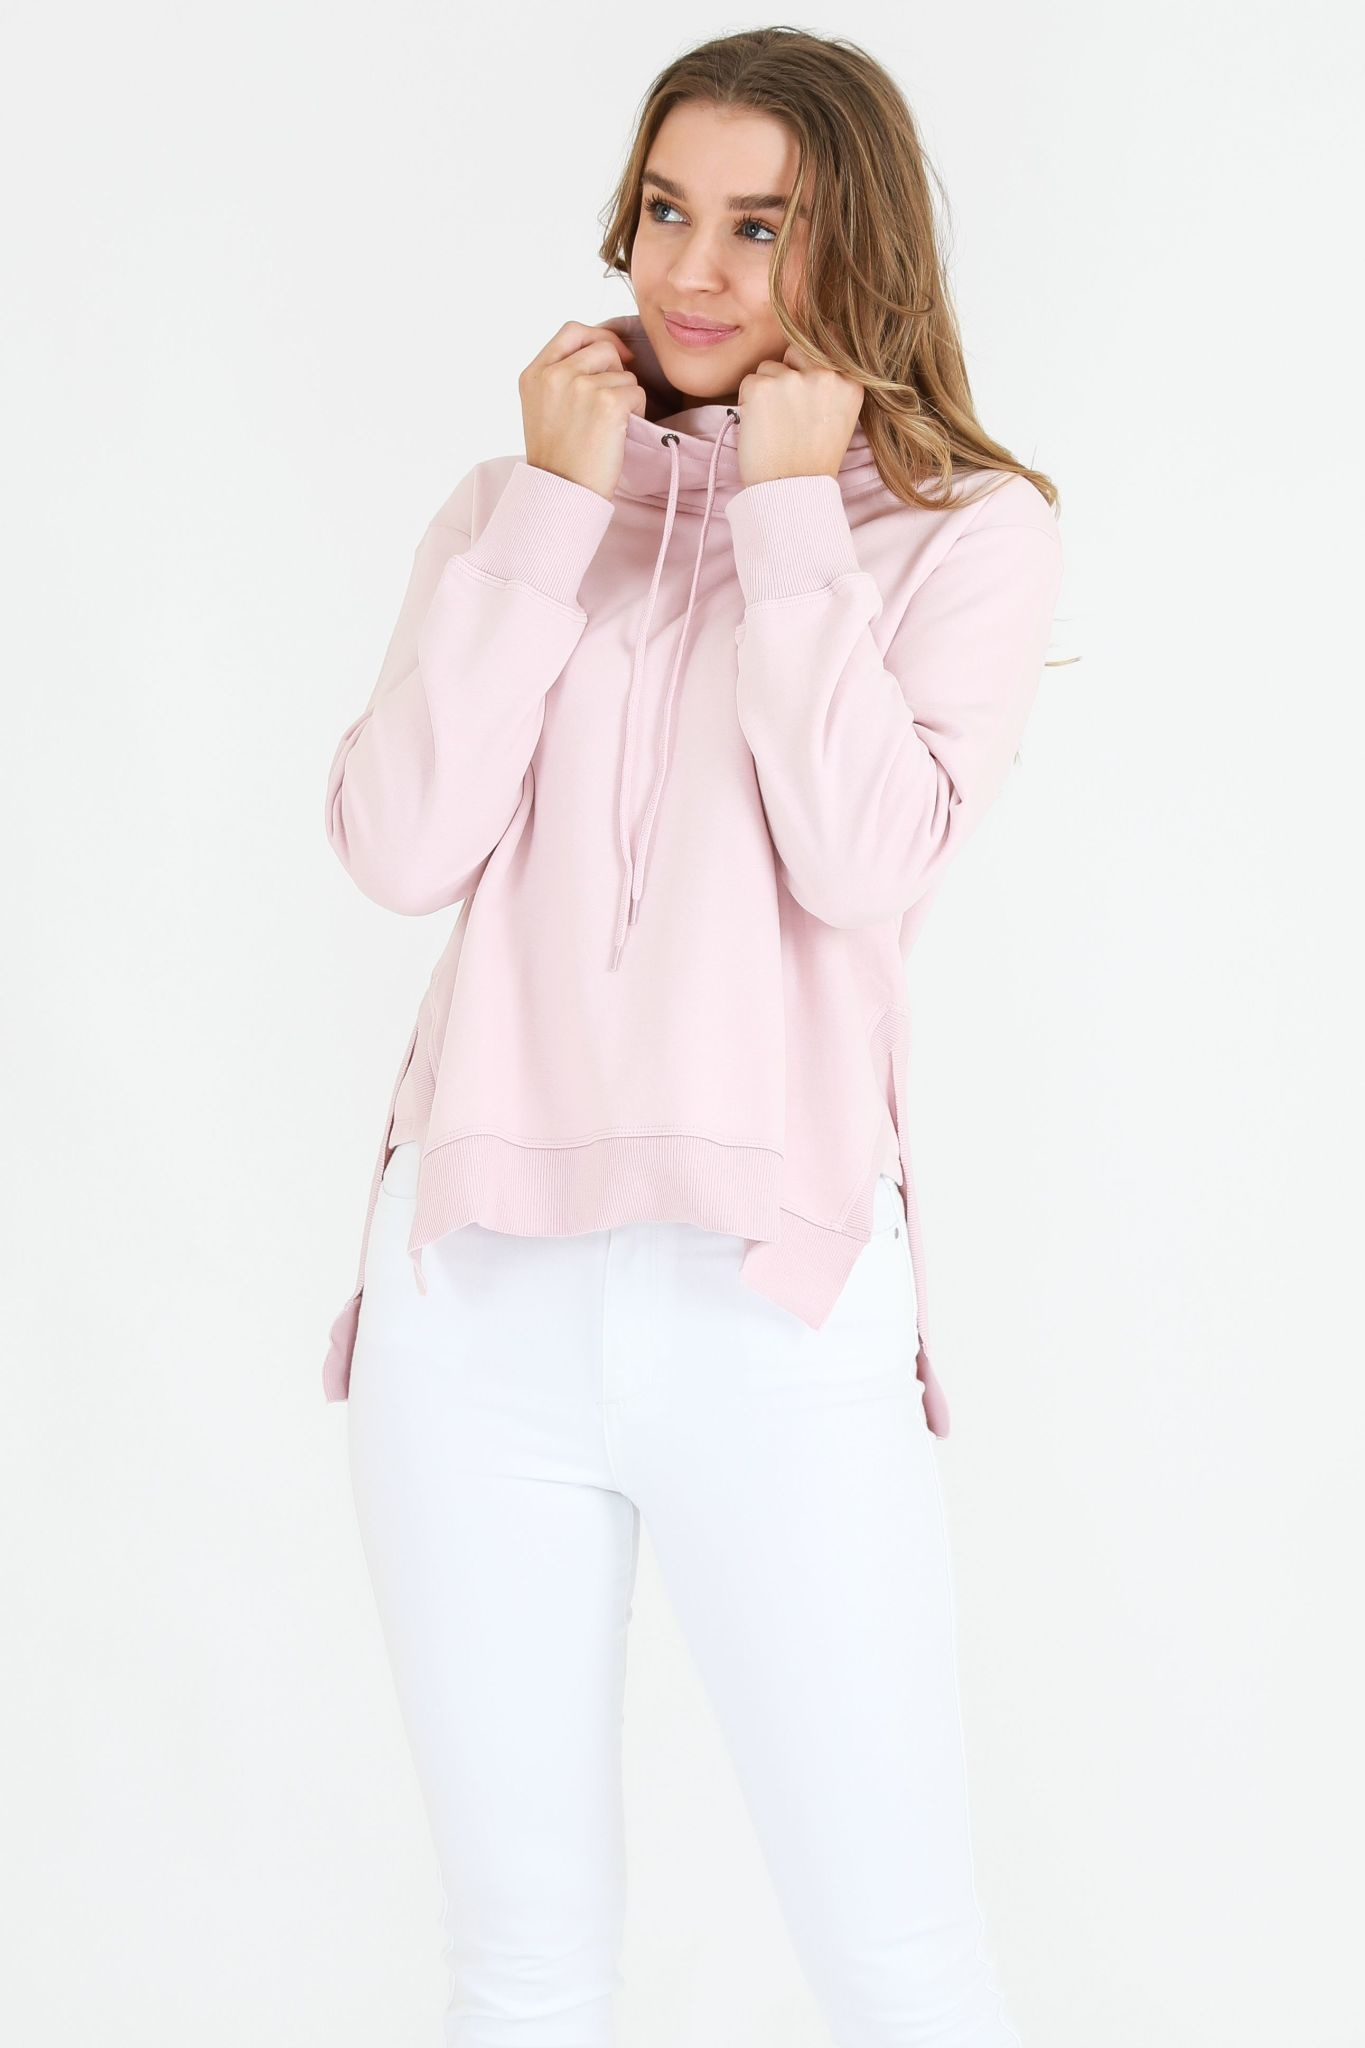 3rd Story Alicia Sweater